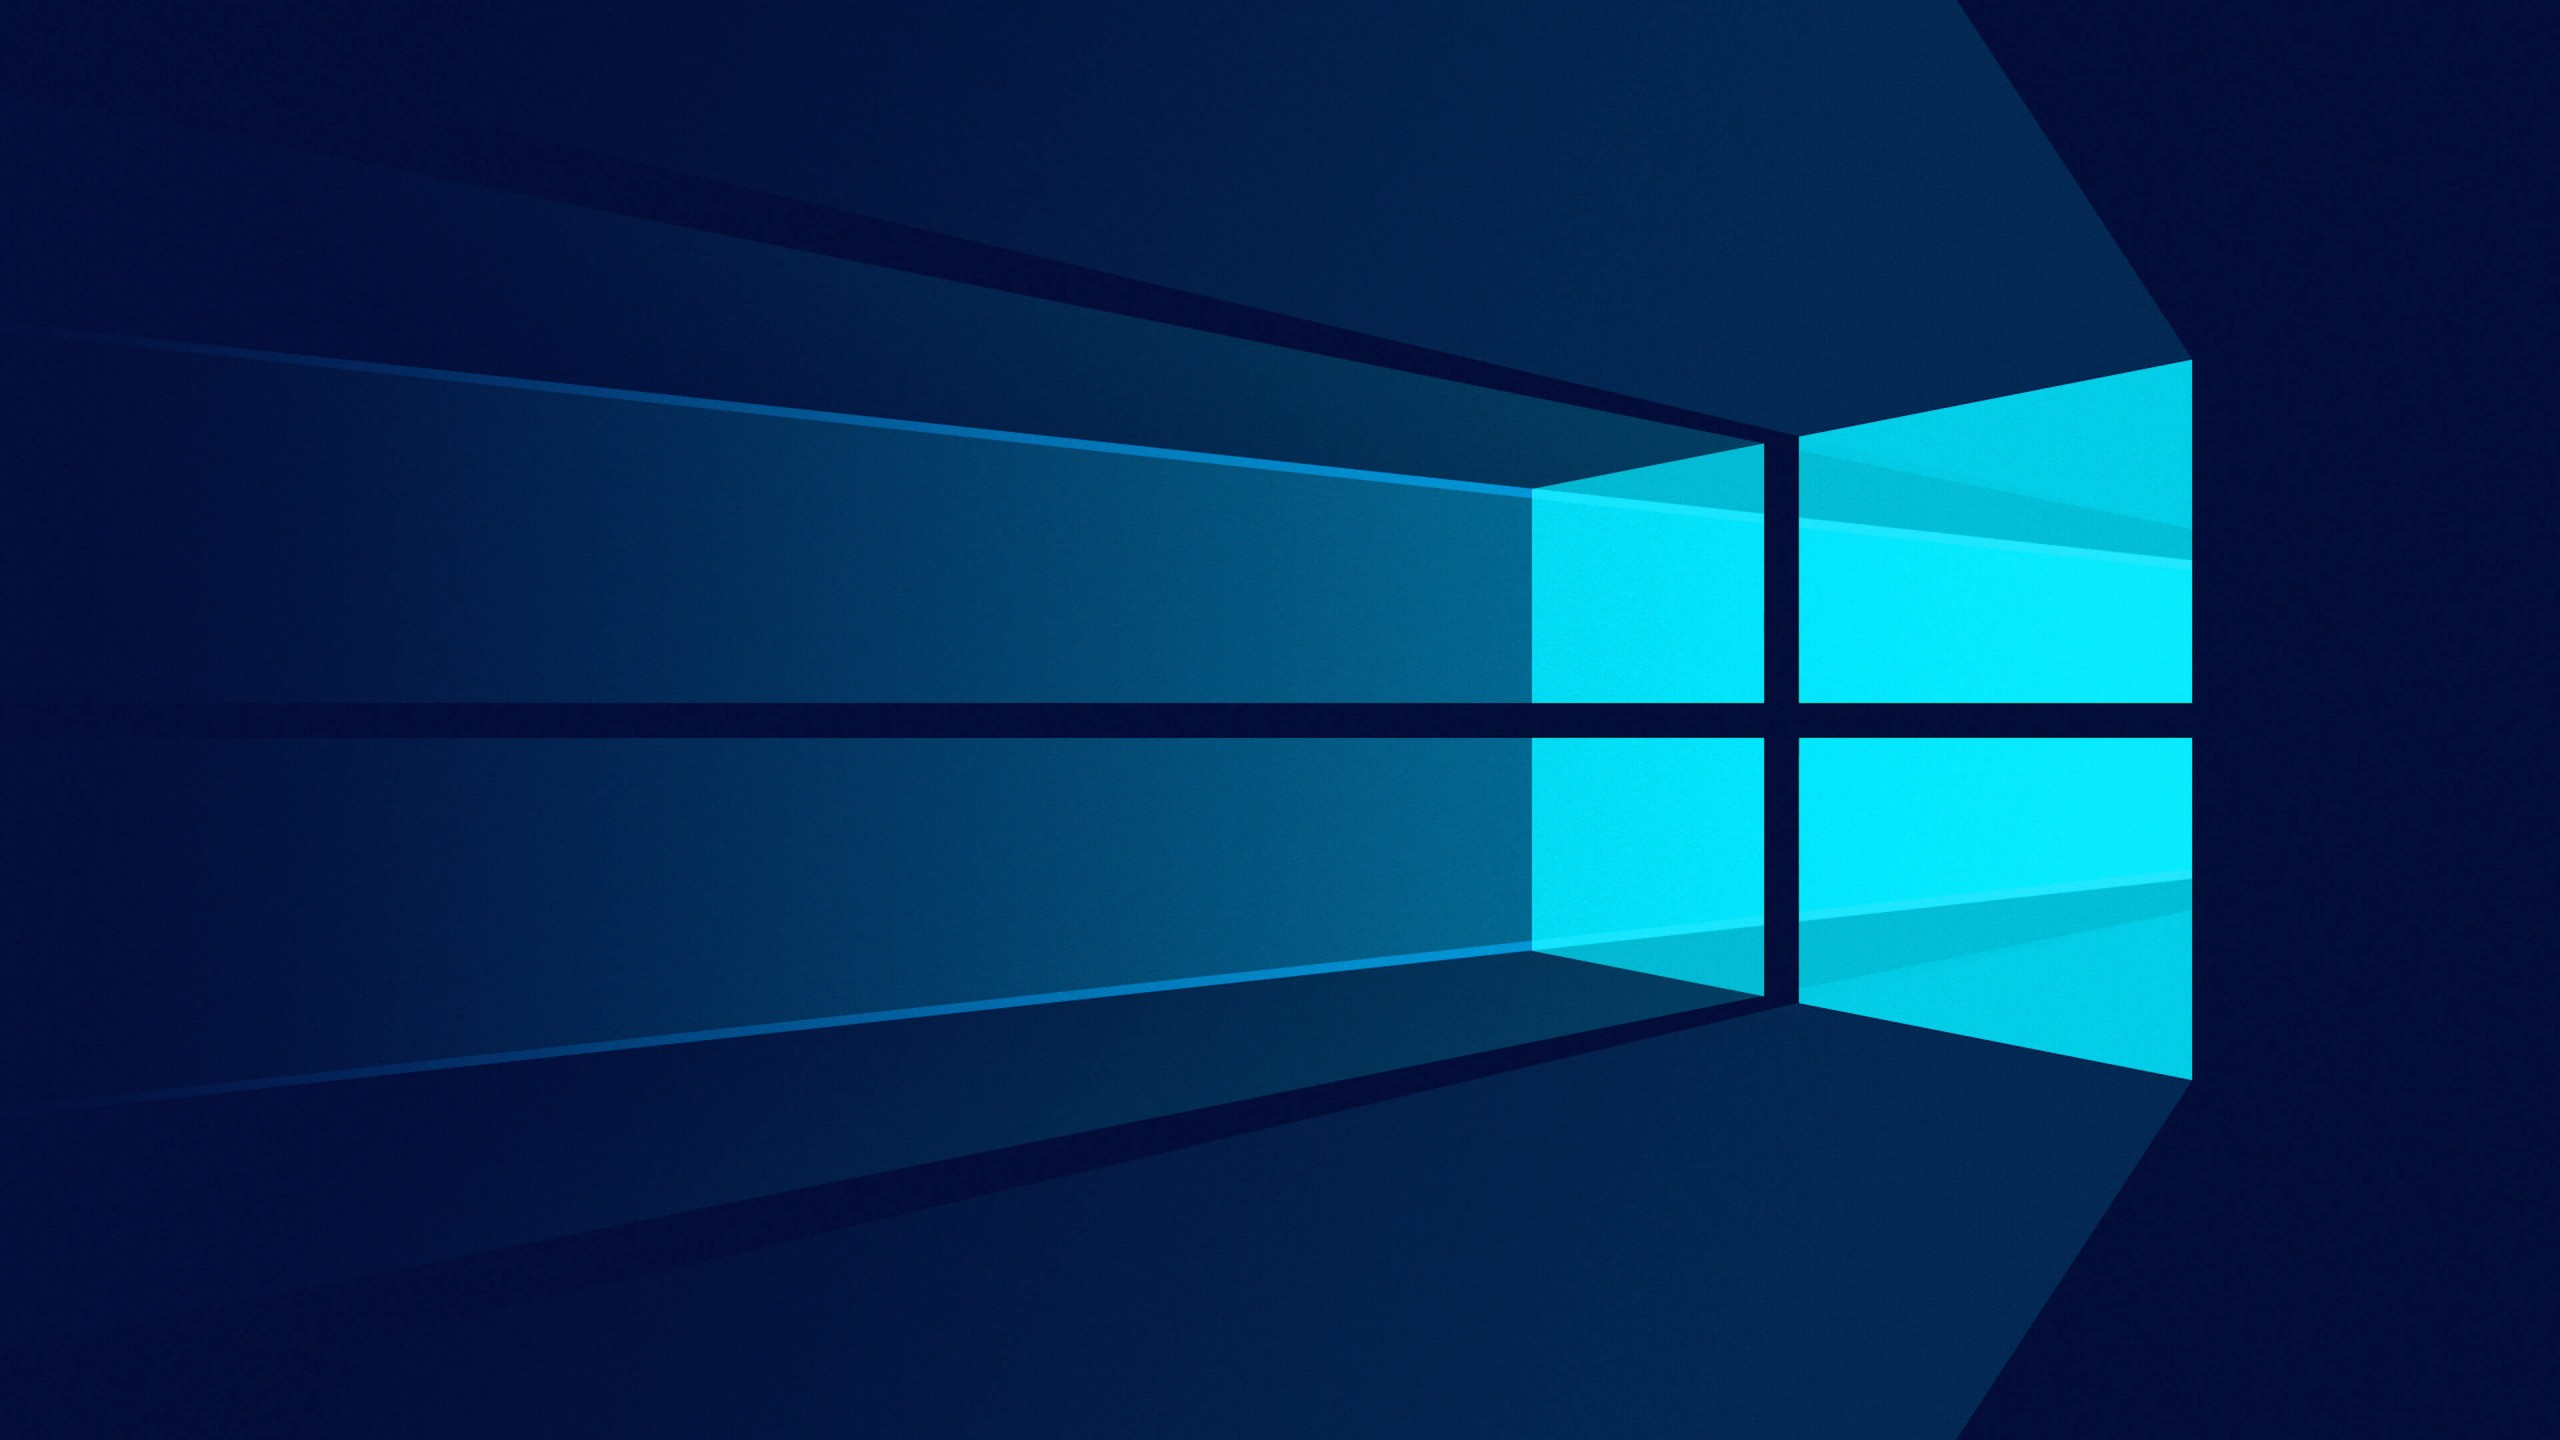 Download Windows 10 Flat HD wallpaper for 2560 x 1440   HDwallpapers 2560x1440